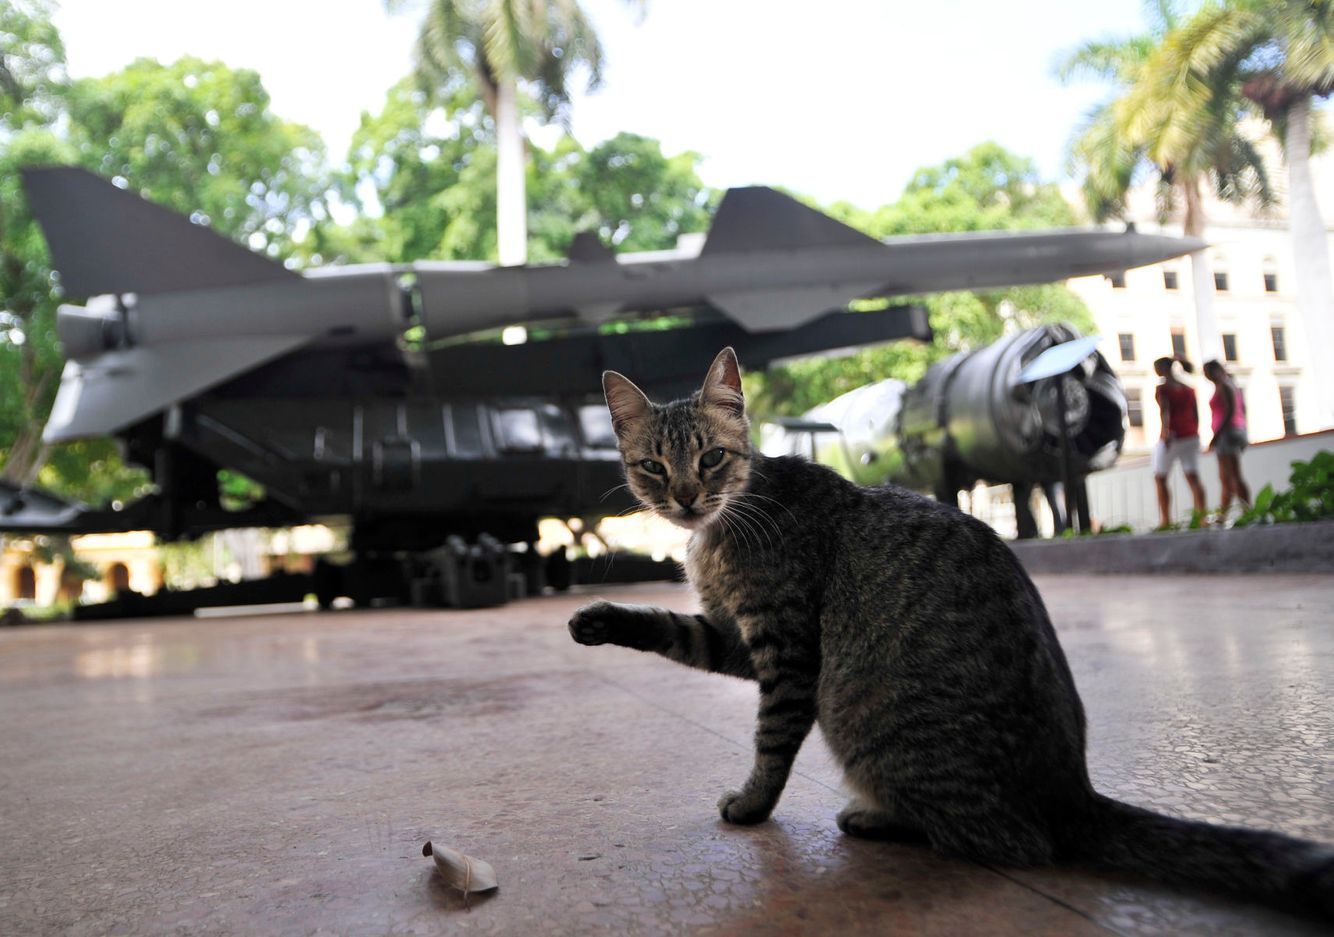 A cat appears to be waving in front of Cuban missiles on display at the Revolutionary Museum in Havana, Cuba.